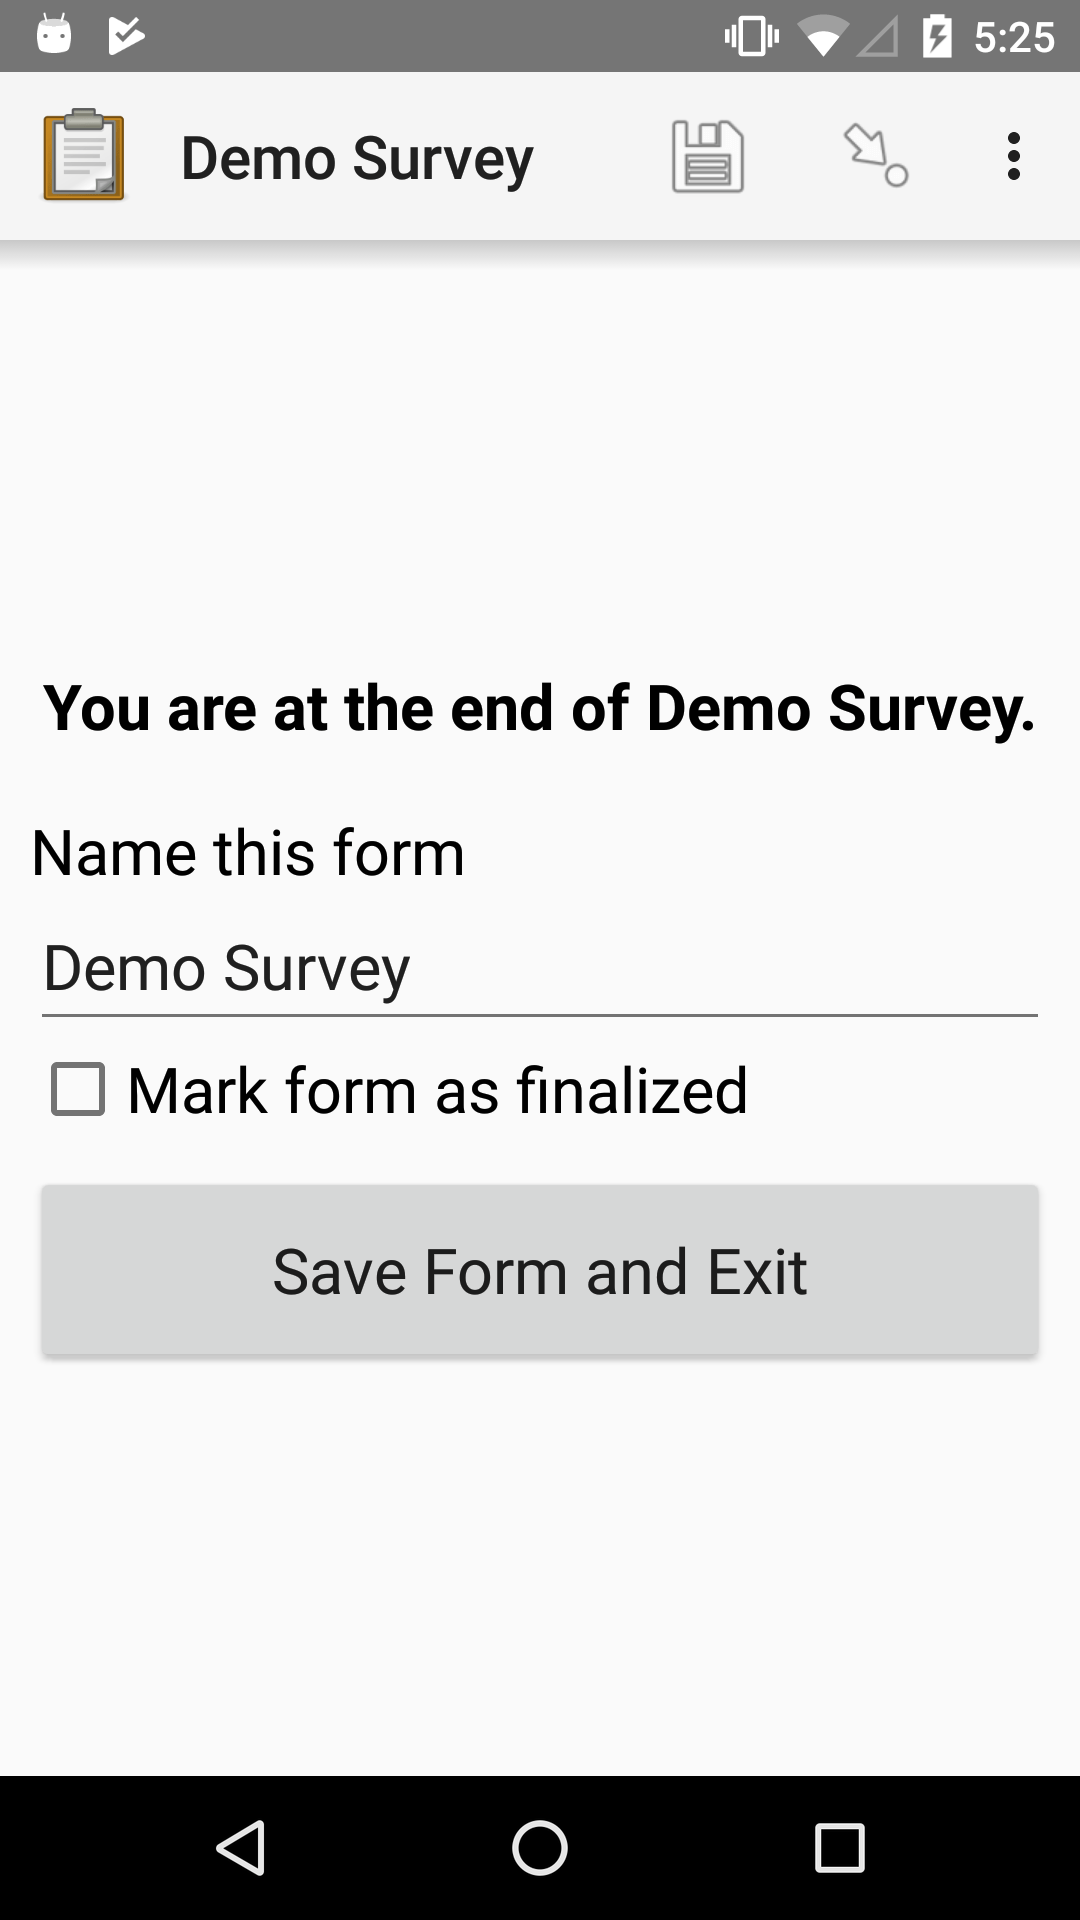 The end of a survey in the Collect app. The headline is *You are at the end of Demo Survey.* Below that is a text field labeled *Name this form*, with the value 'Demo Survey'. Then an unchecked checkbox labeled *Mark form as finalized*. Below all that is a button labeled *Save Form and Exit*.